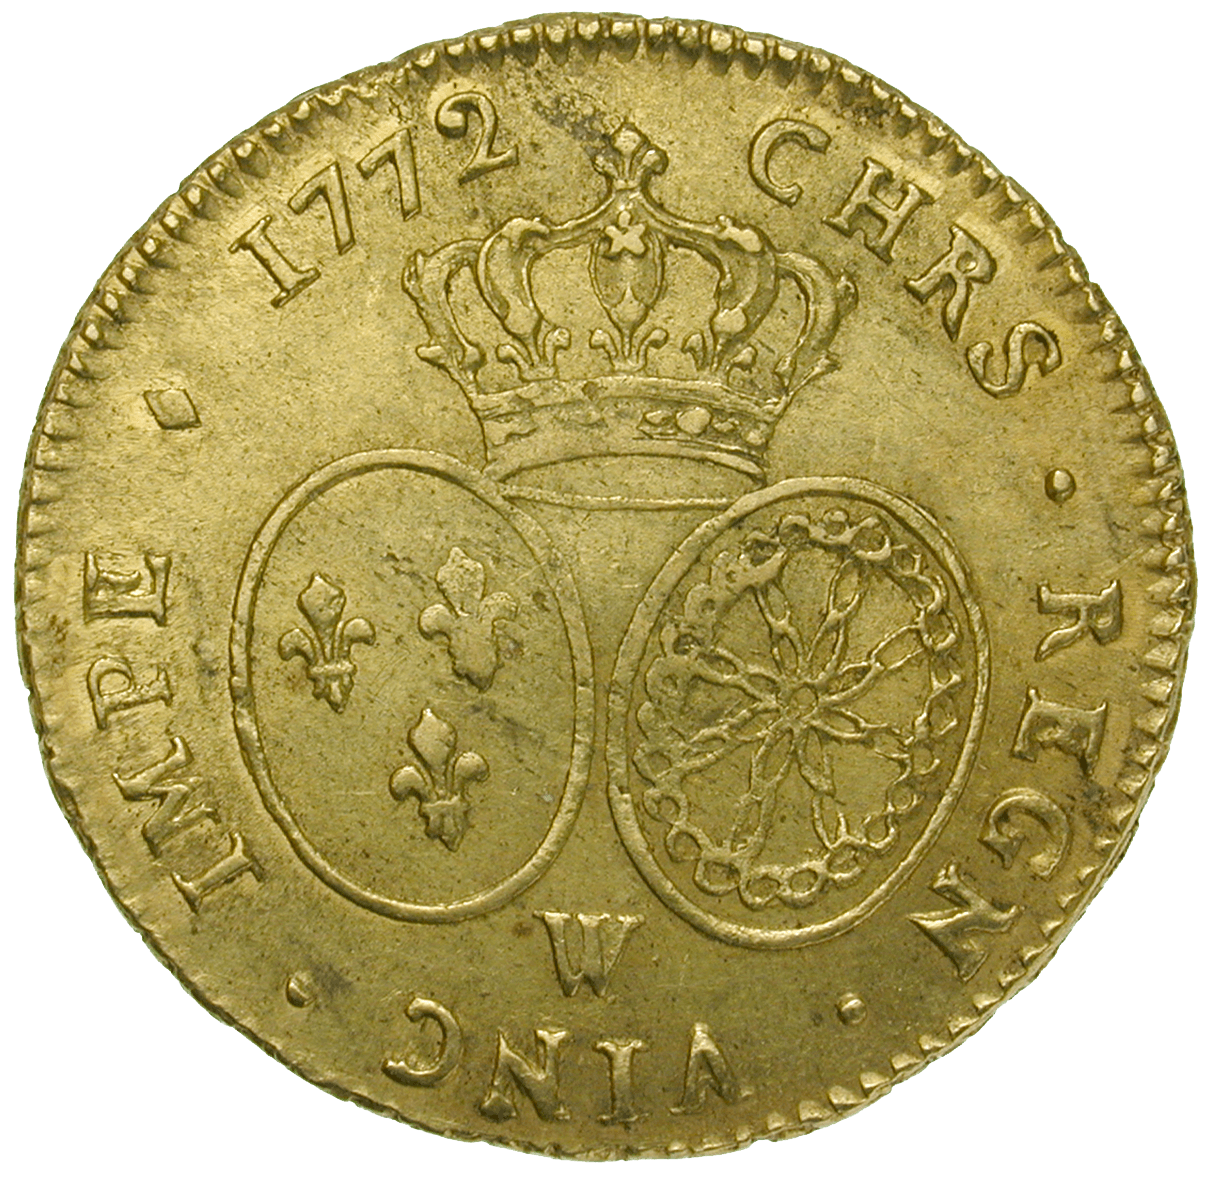 Königreich Frankreich, Ludwig XV., Doppelter Louis d'or 1772 (reverse)